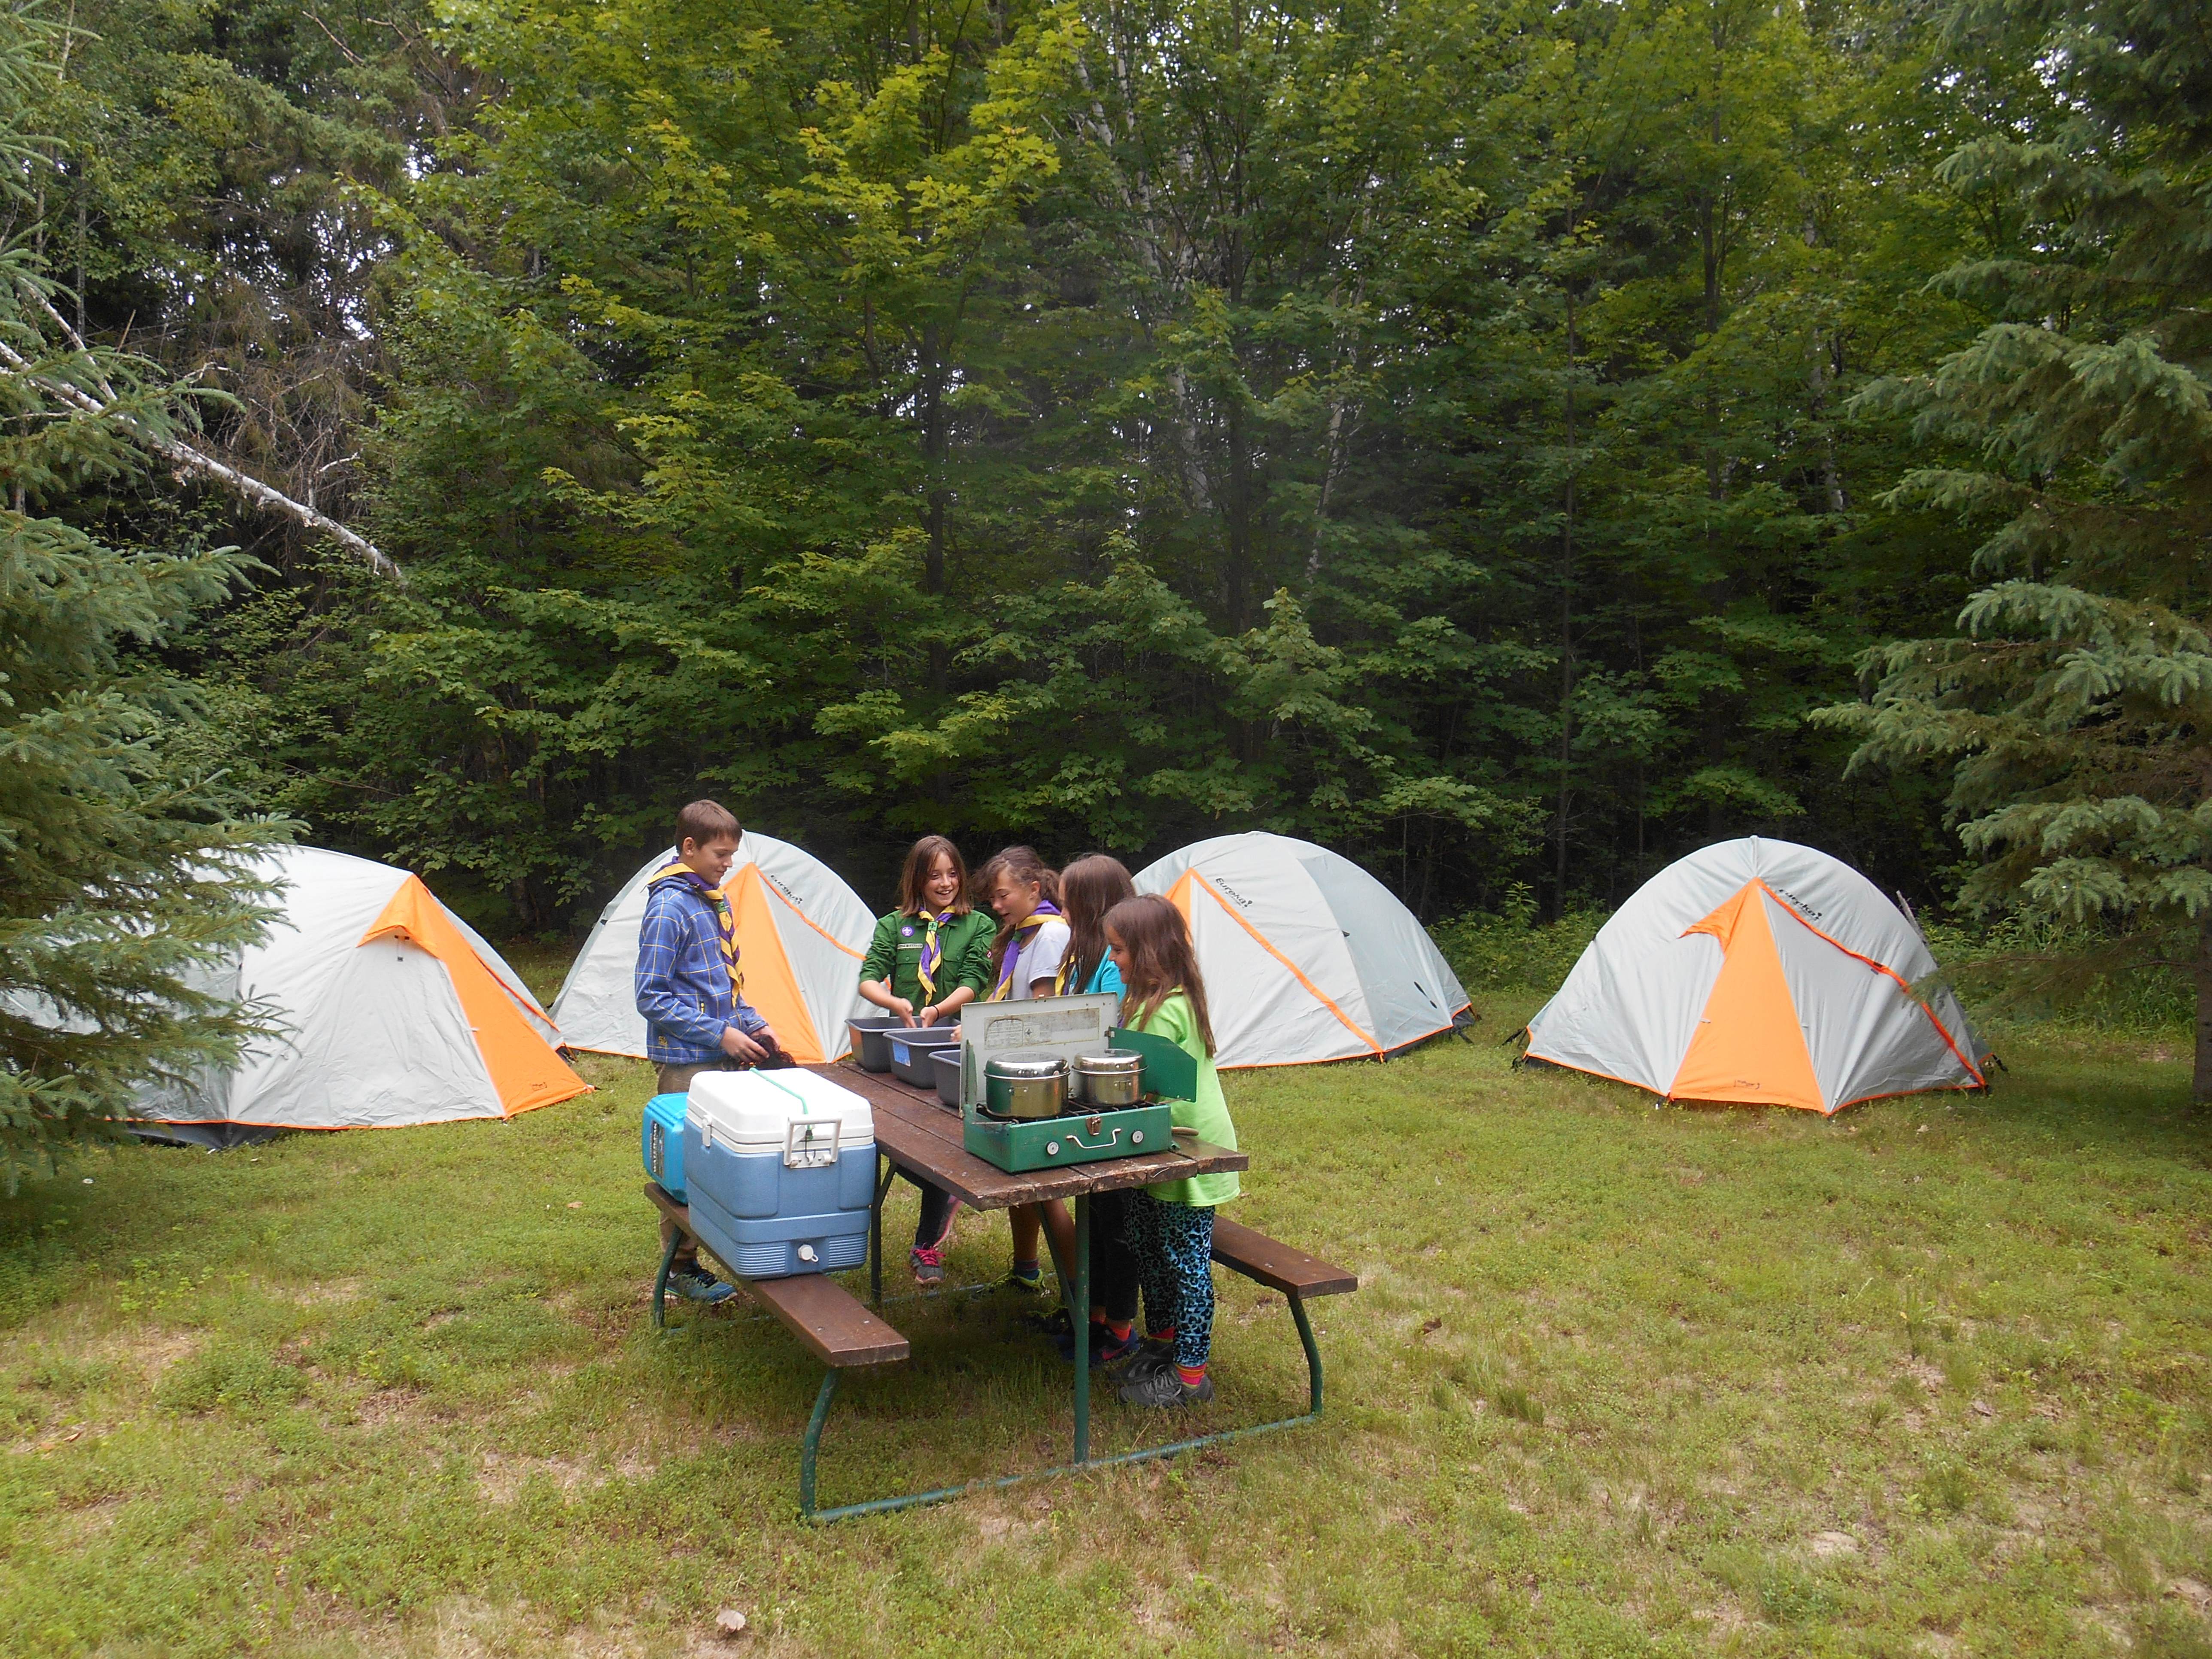 We shopped around and the best tent we found in our price range was the Eureka Mackenzie 4 from the Scout Shop. We ordered 6 tents and within two weeks of ... & Equipment Review: Eureka MacKenzie 4 Tent | Scouting Life ...